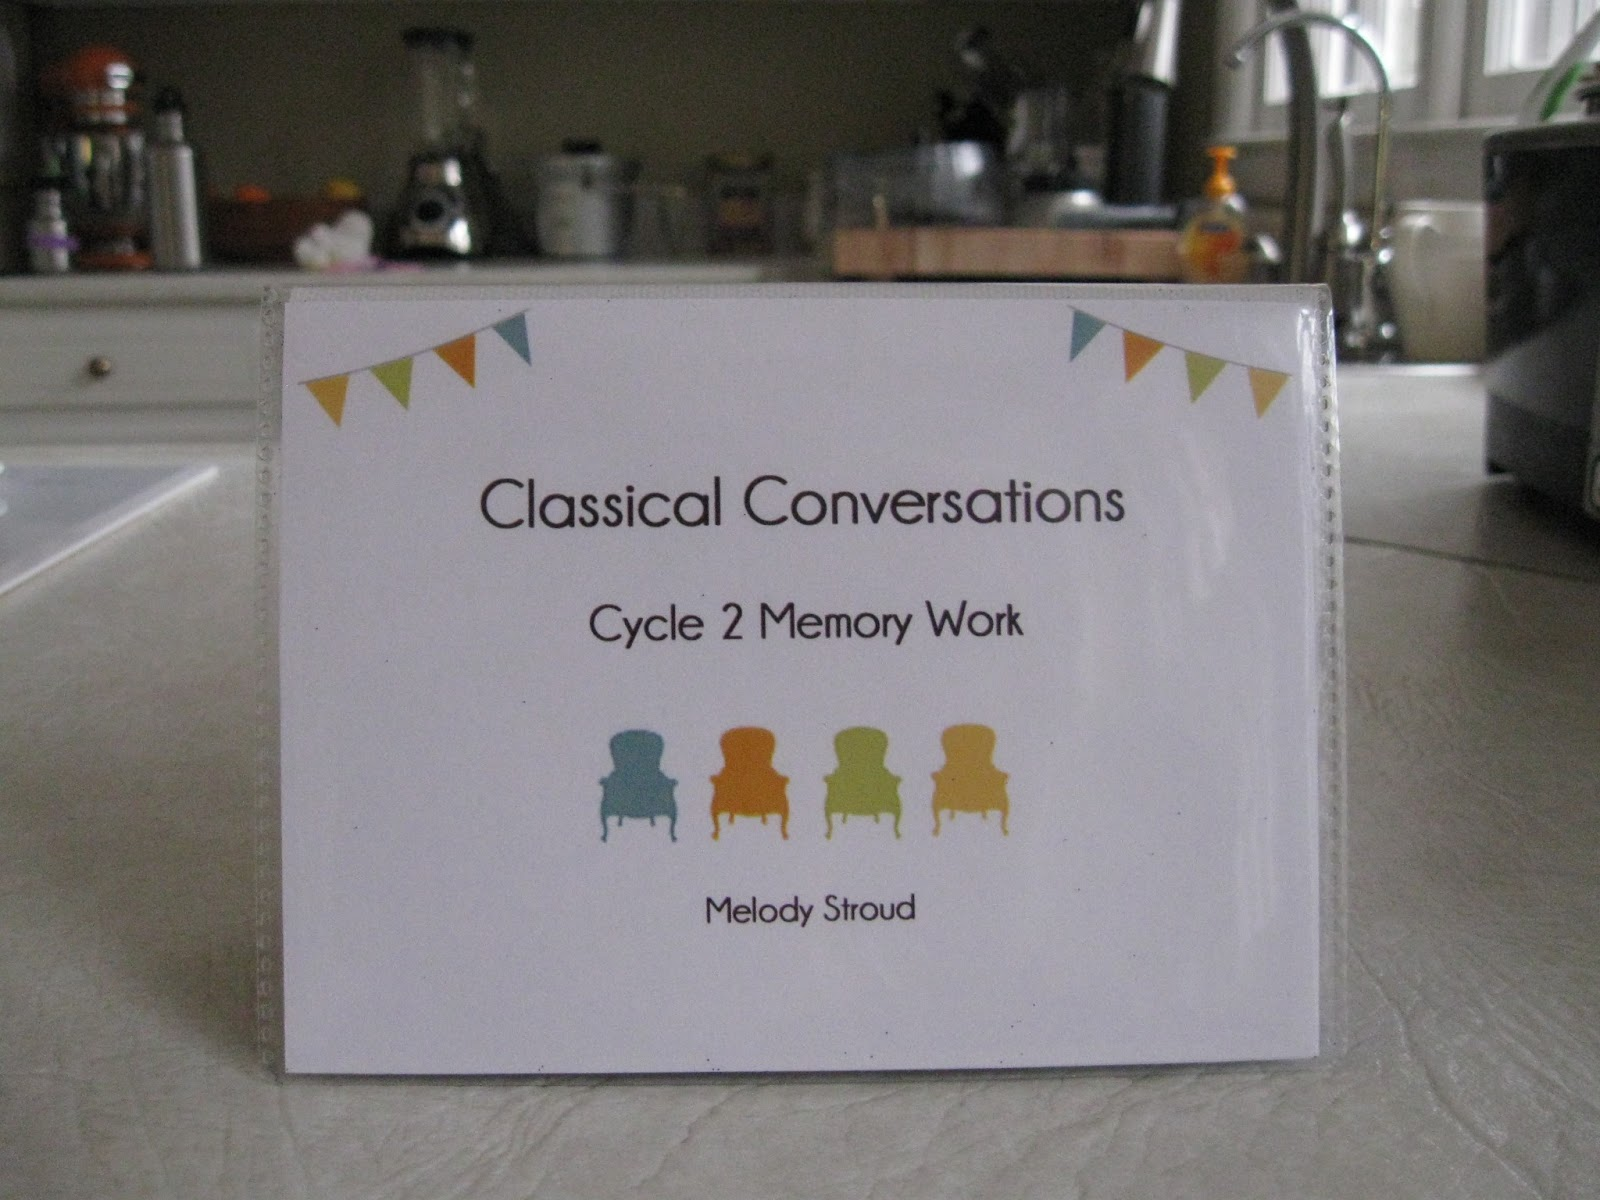 And here we go cycle 2 memory work flip chart cycle 2 memory work flip chart solutioingenieria Choice Image